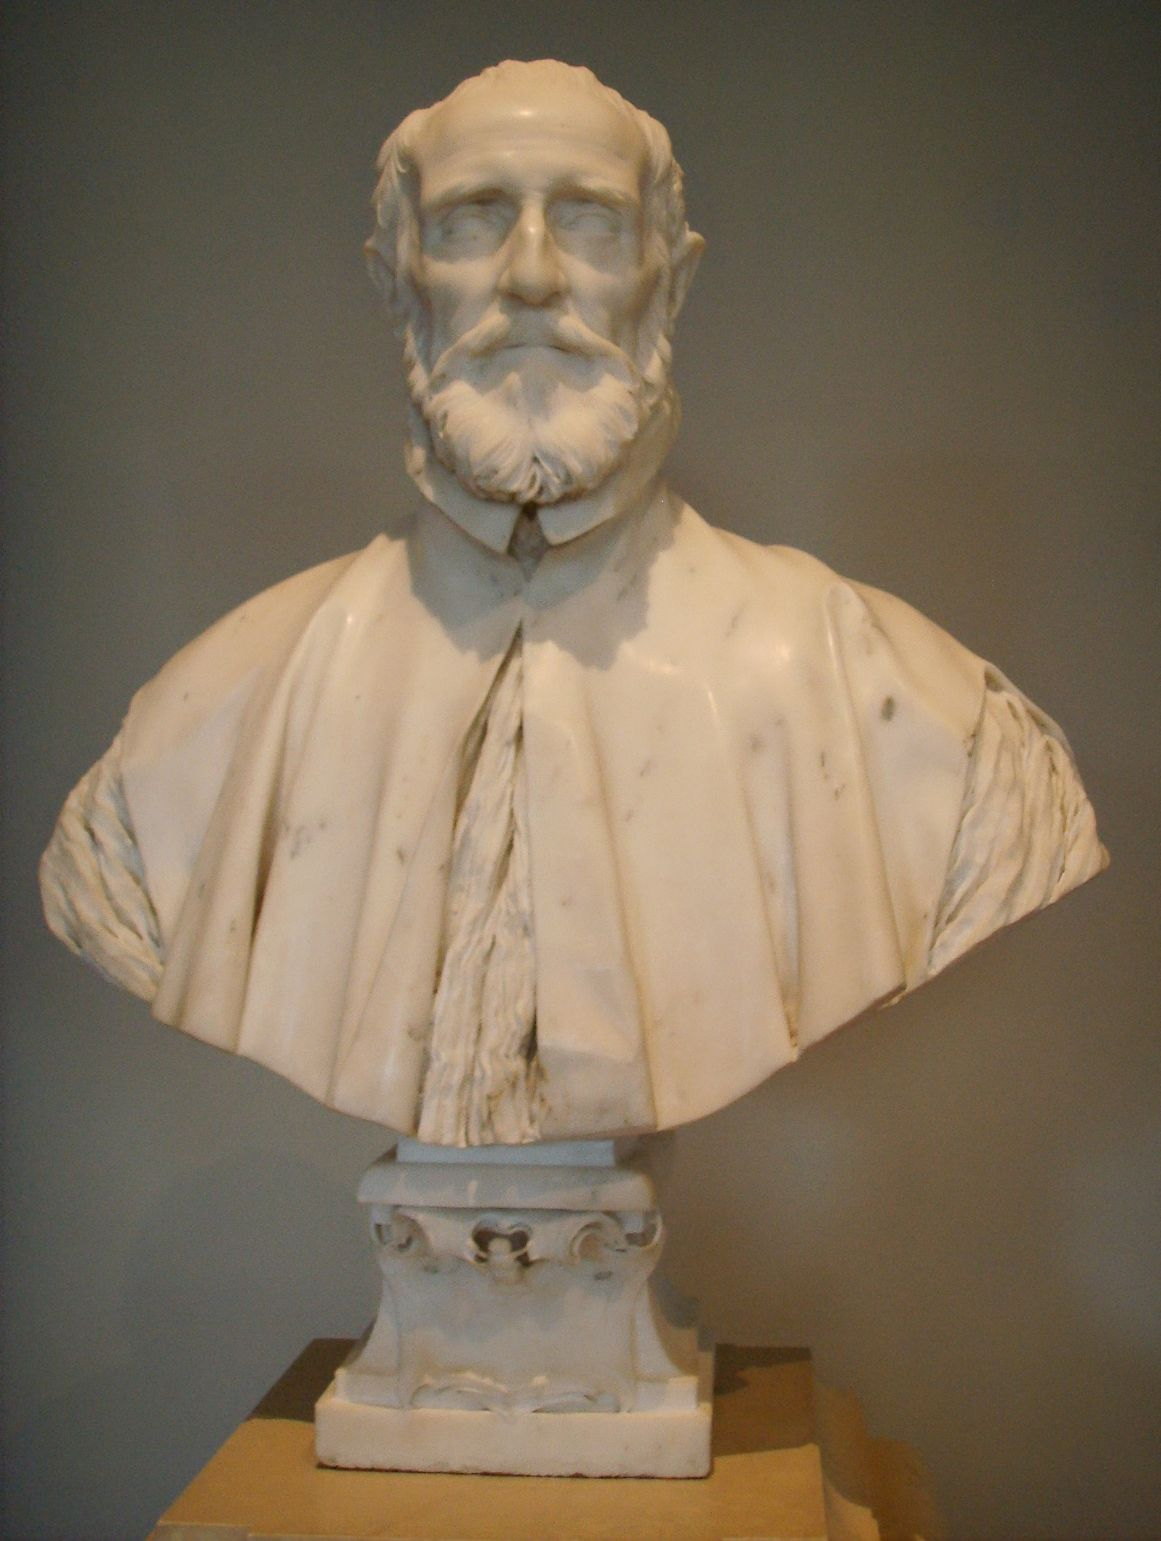 marble inscription for pope urban viii by gian lorenzo bernini gian lorenzo bernini monsignor sco barberini ca national gallery of art washington d c